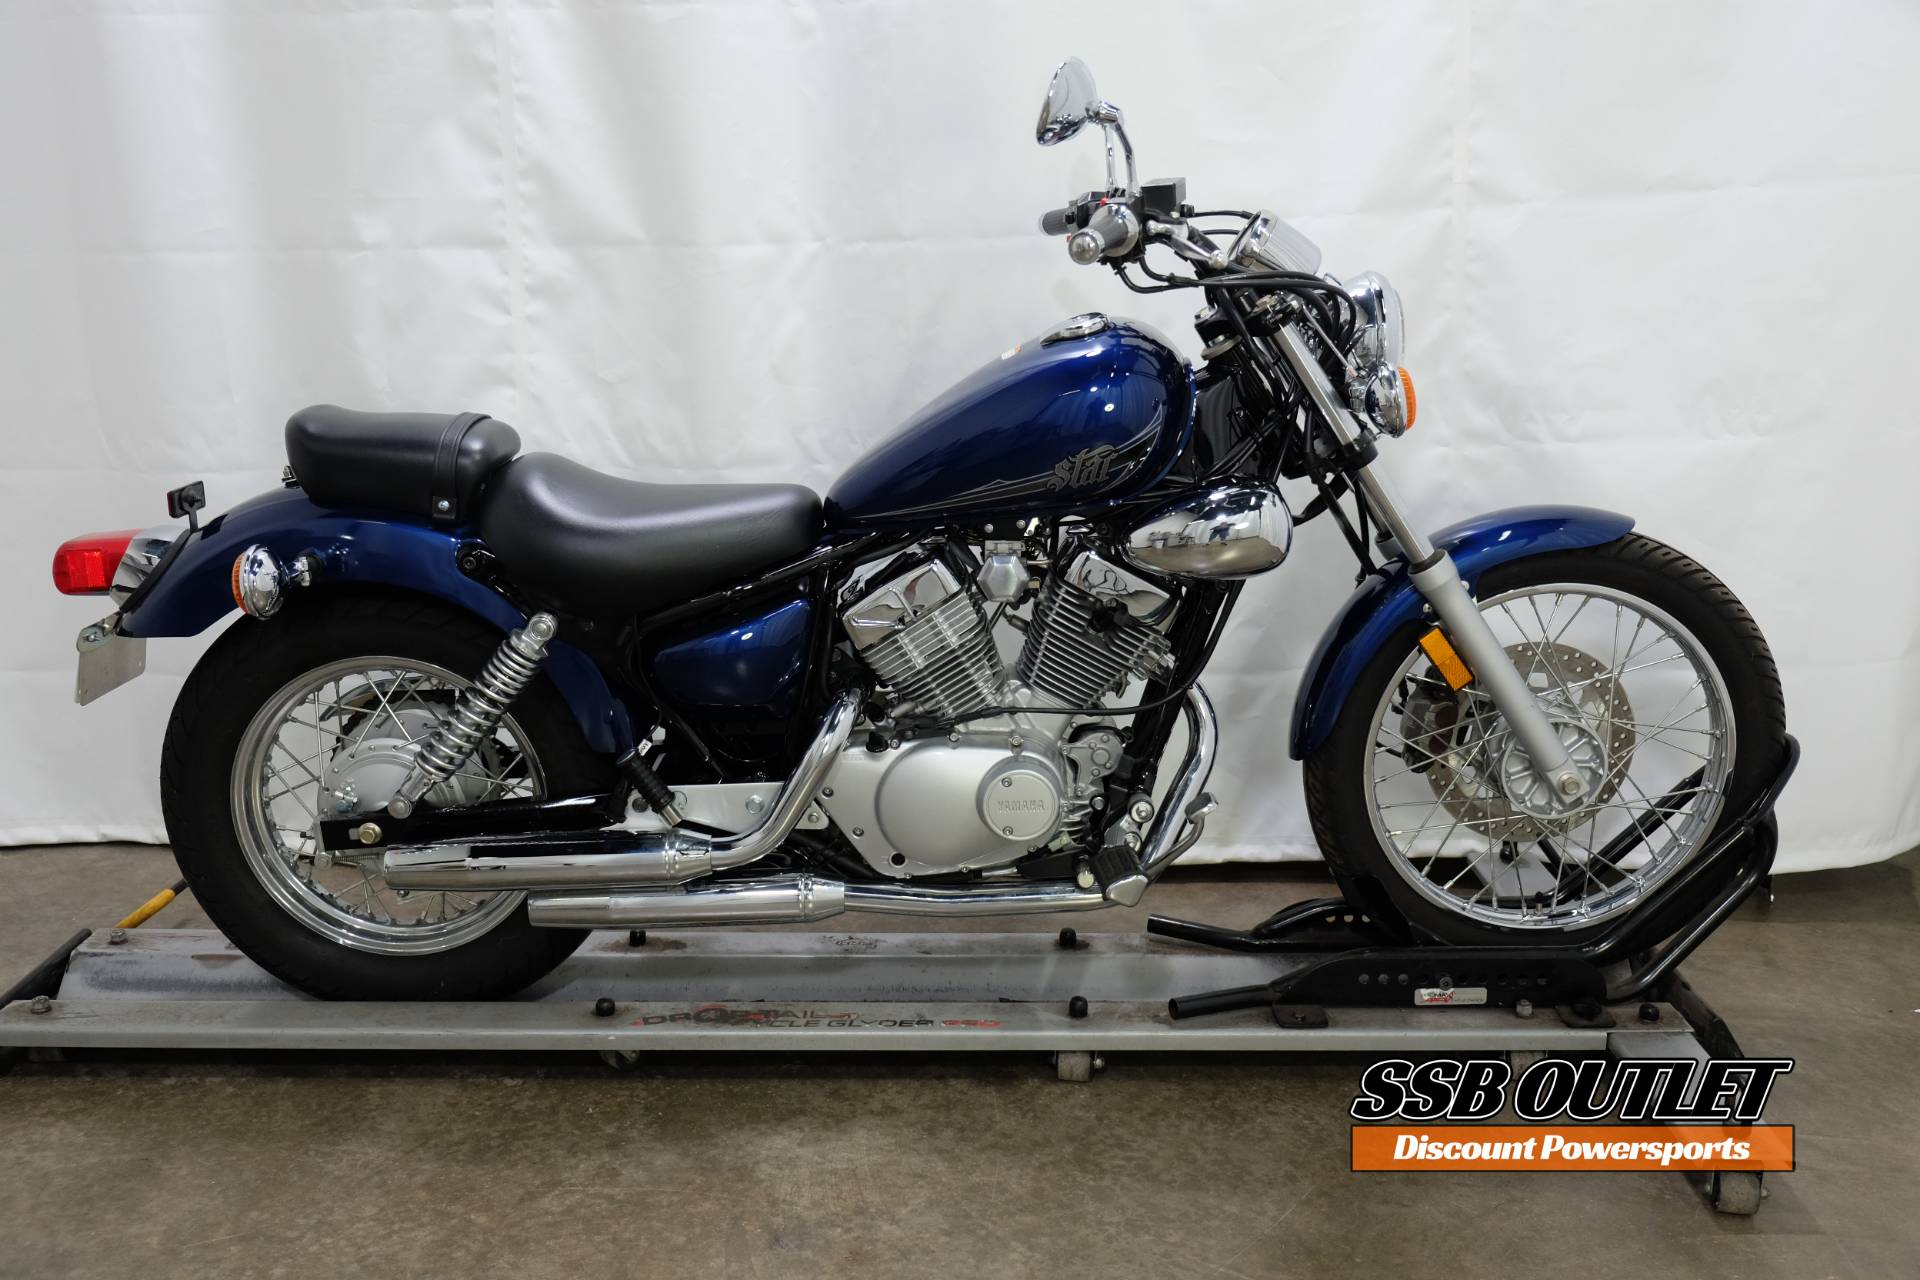 2013 Yamaha V Star 250 in Eden Prairie, Minnesota - Photo 1